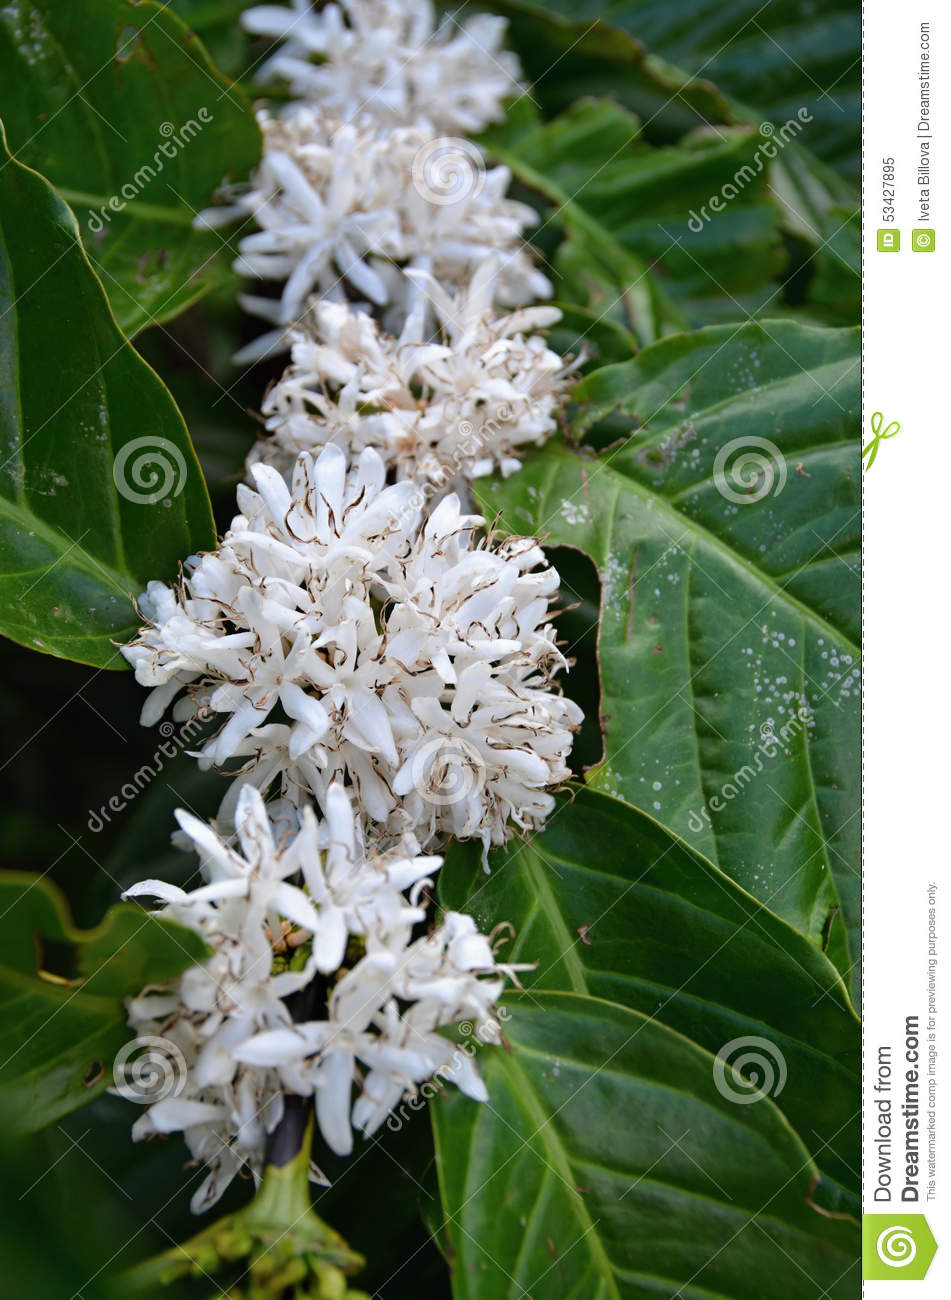 Tropical plant with white flower of coffee cuba stock image download tropical plant with white flower of coffee cuba stock image image of white mightylinksfo